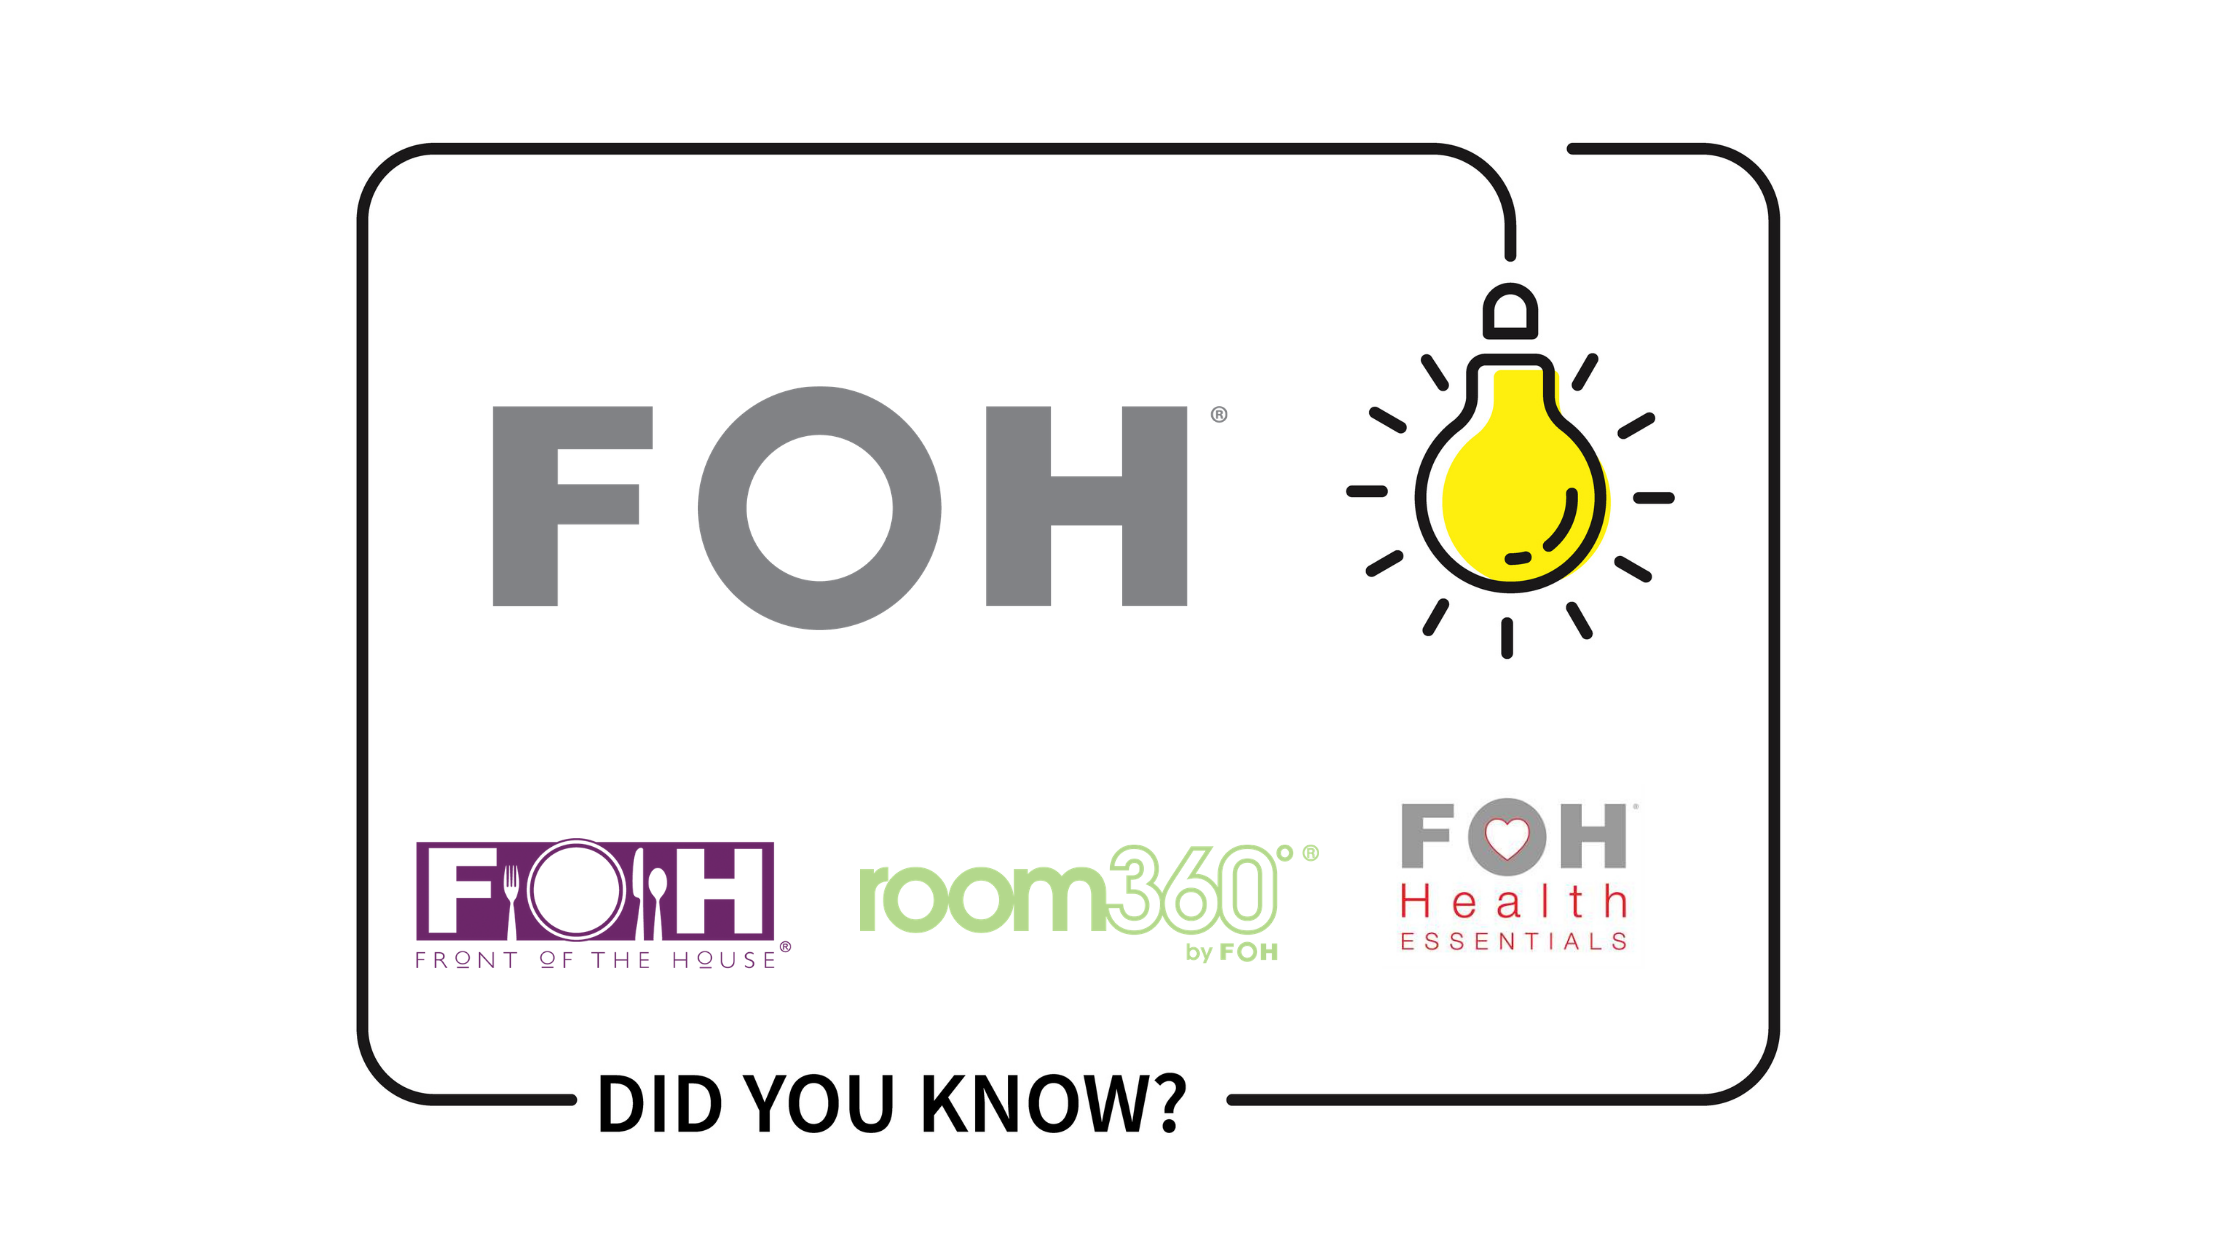 10 Things You May Not Know About FOH®